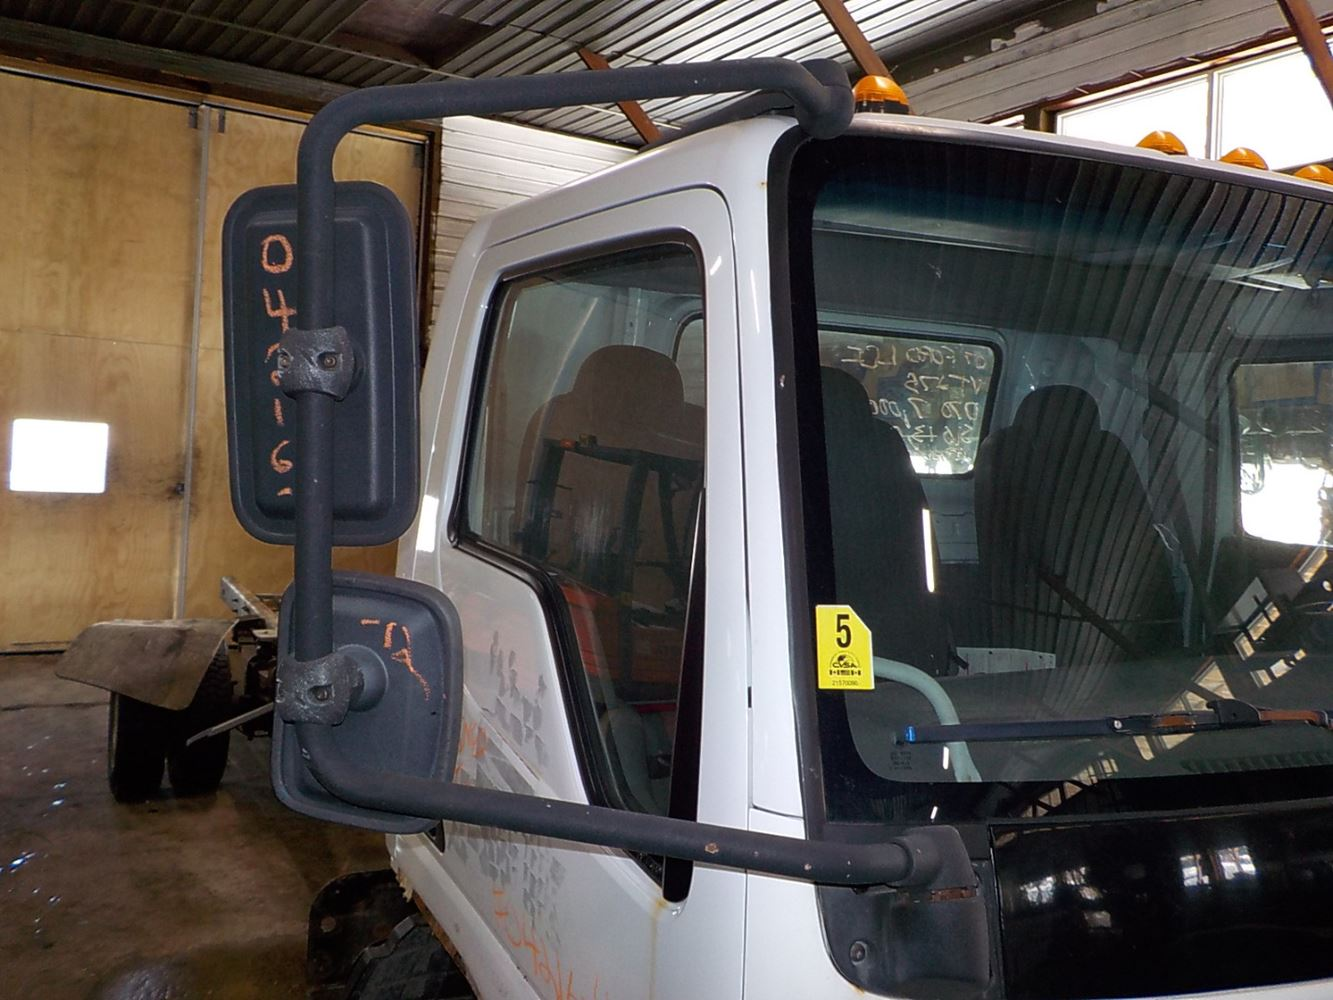 2007 ford lcf (stock 04216 12) mirrors tpi Ford LCF Model Ford LCF Dump Truck Ford LCF Engine